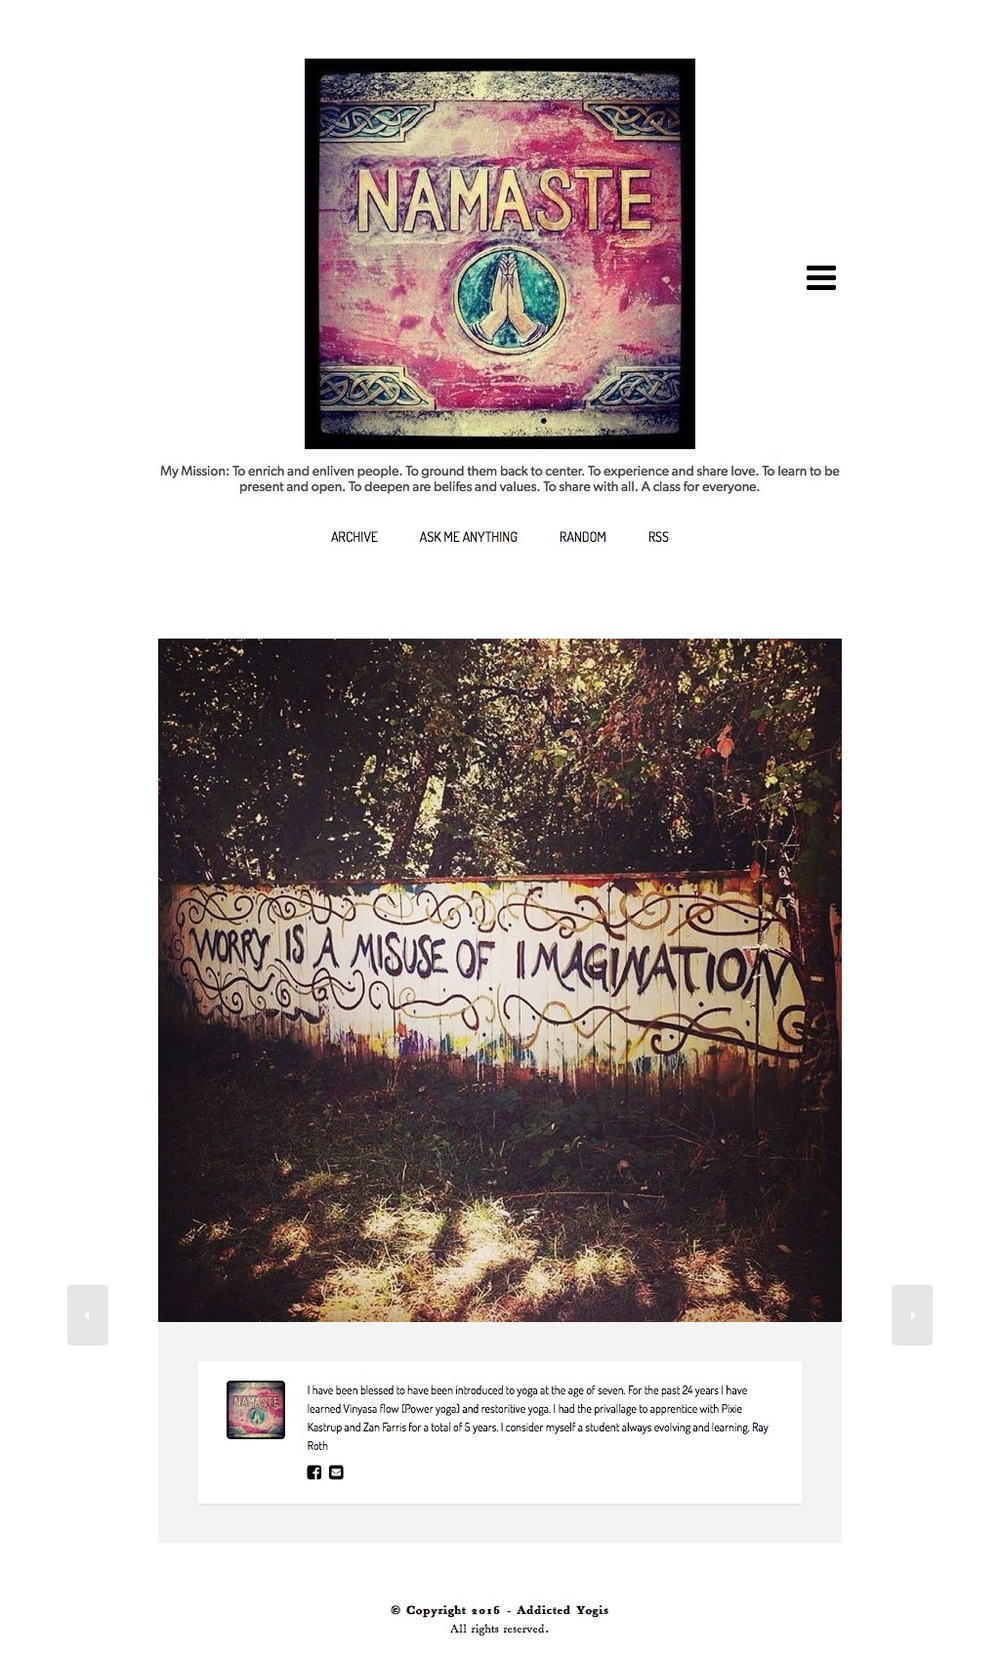 Website Design on tumblr platform